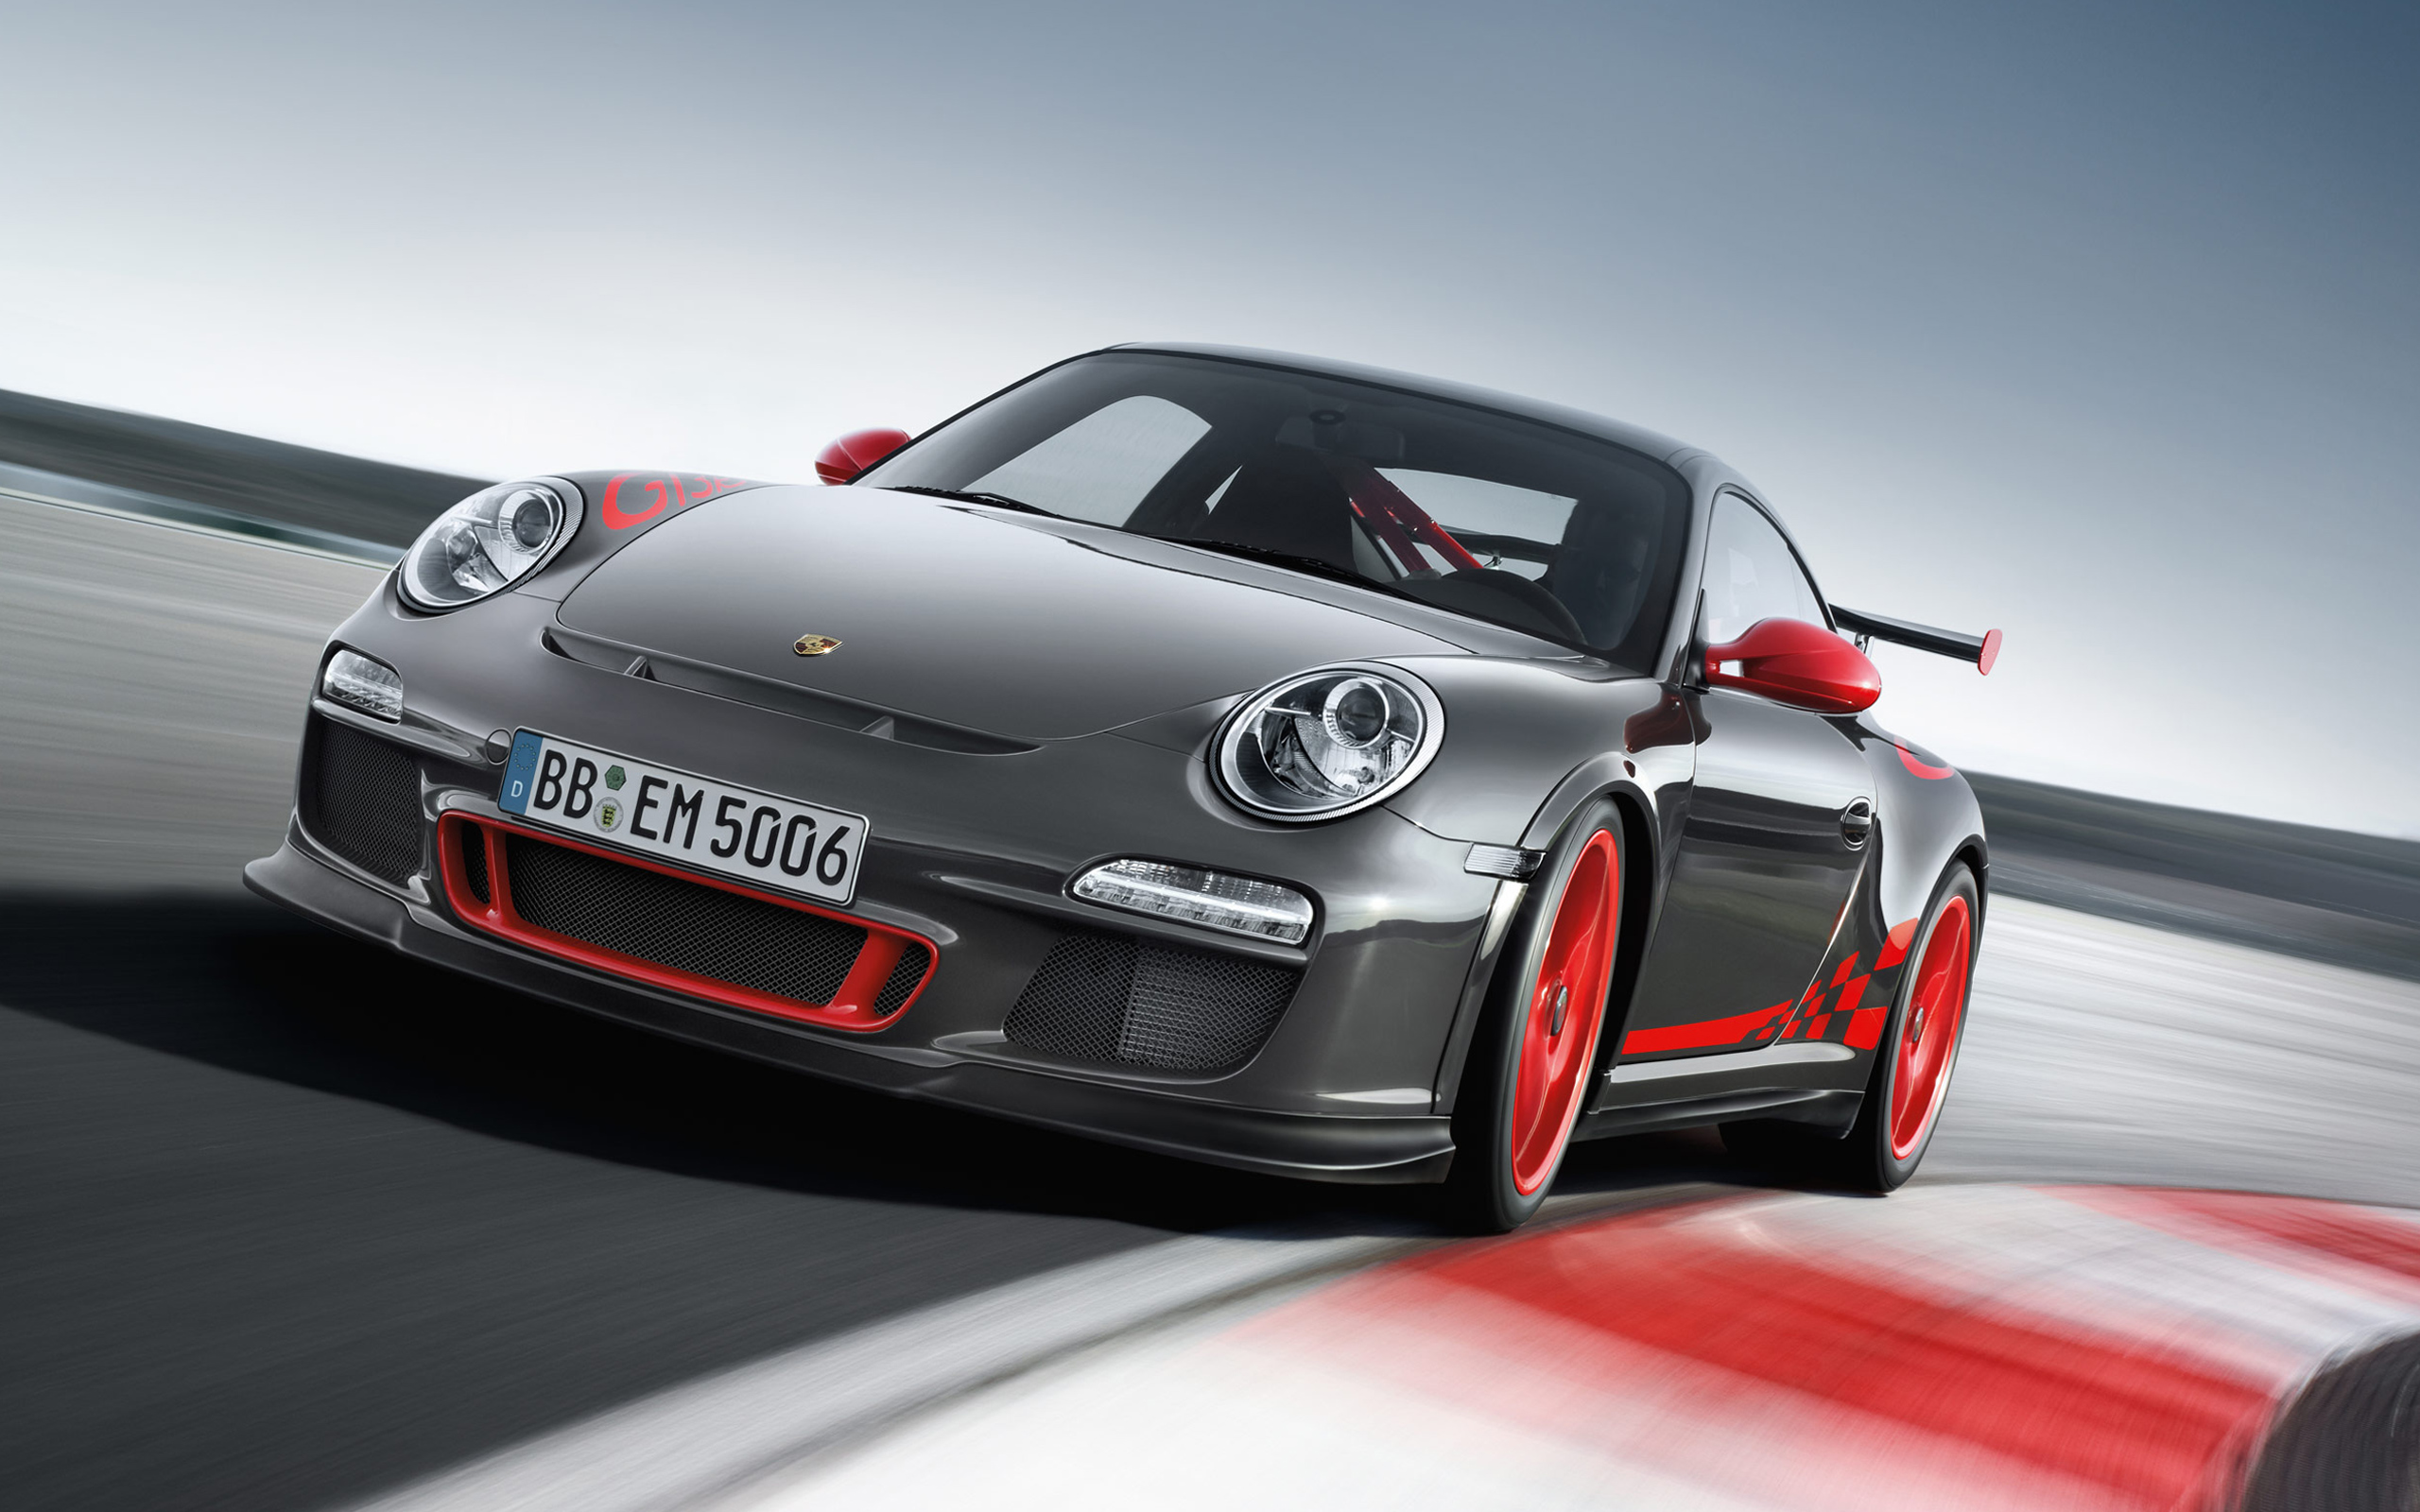 porsche 911 gt3 rs 2012 wallpapers hd wallpapers - Porsche 911 Wallpaper Widescreen